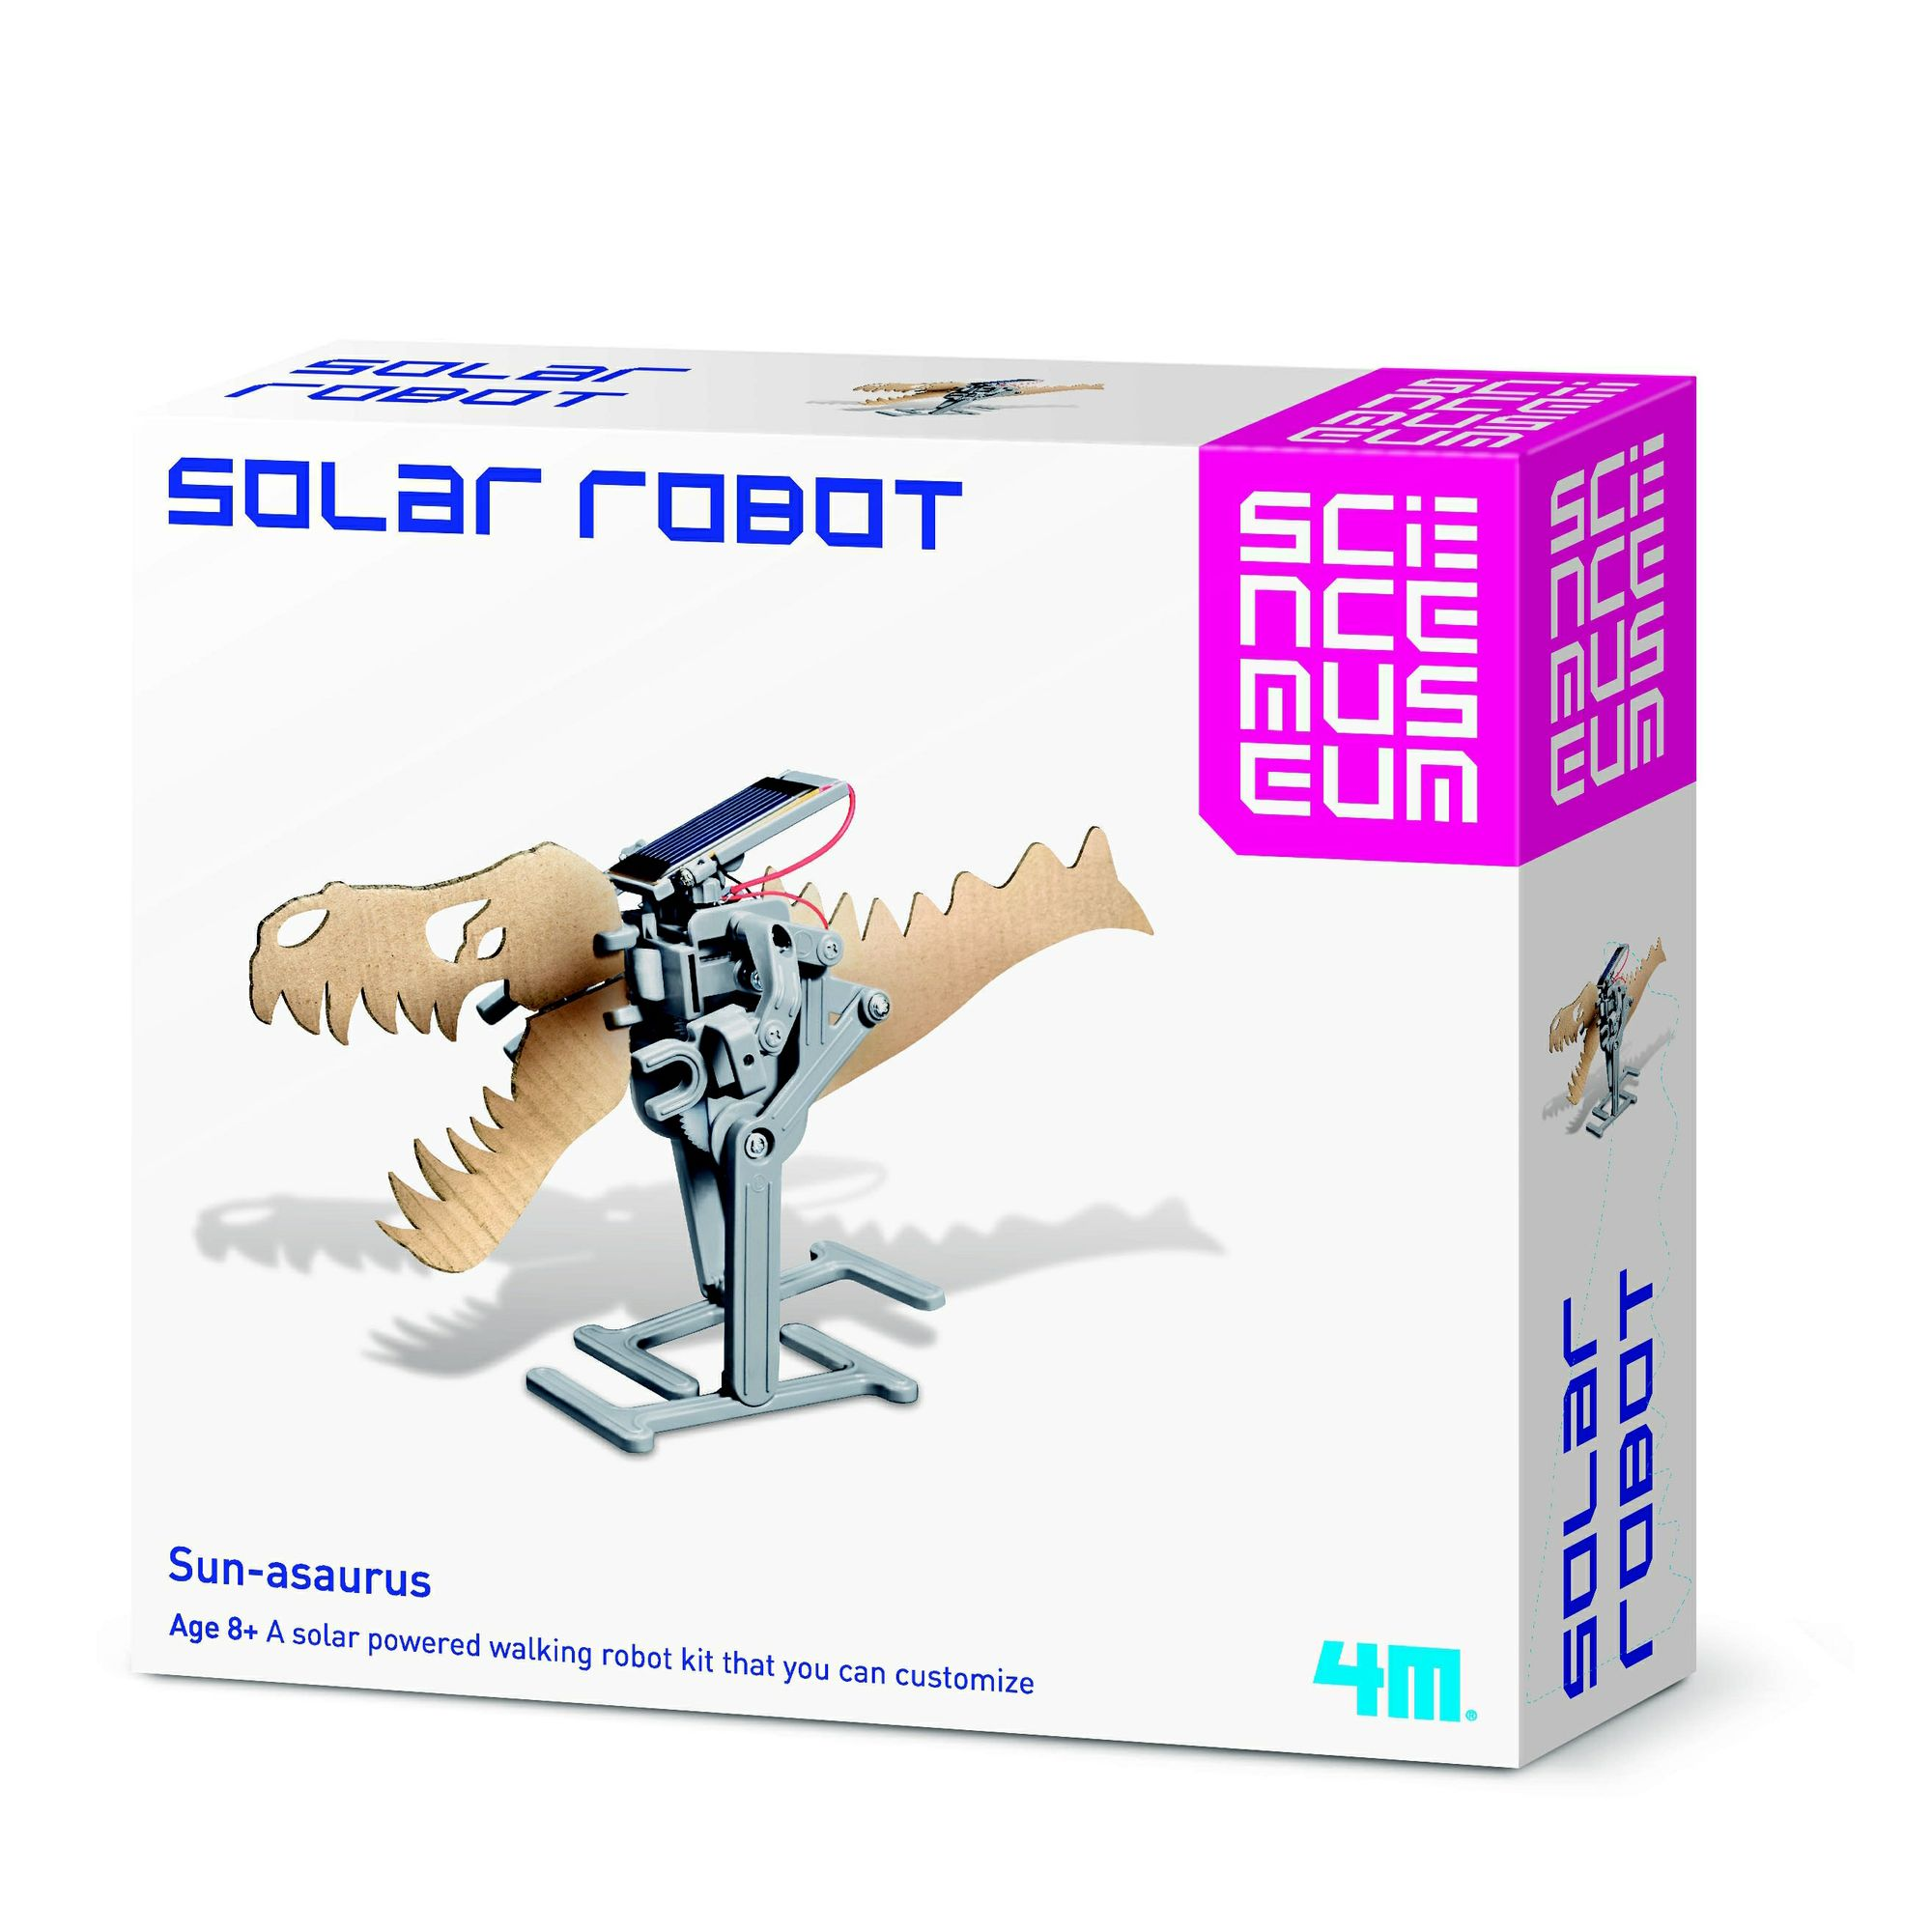 solar-robot-sun-asaurus-03294-science-museum-great-gizmos